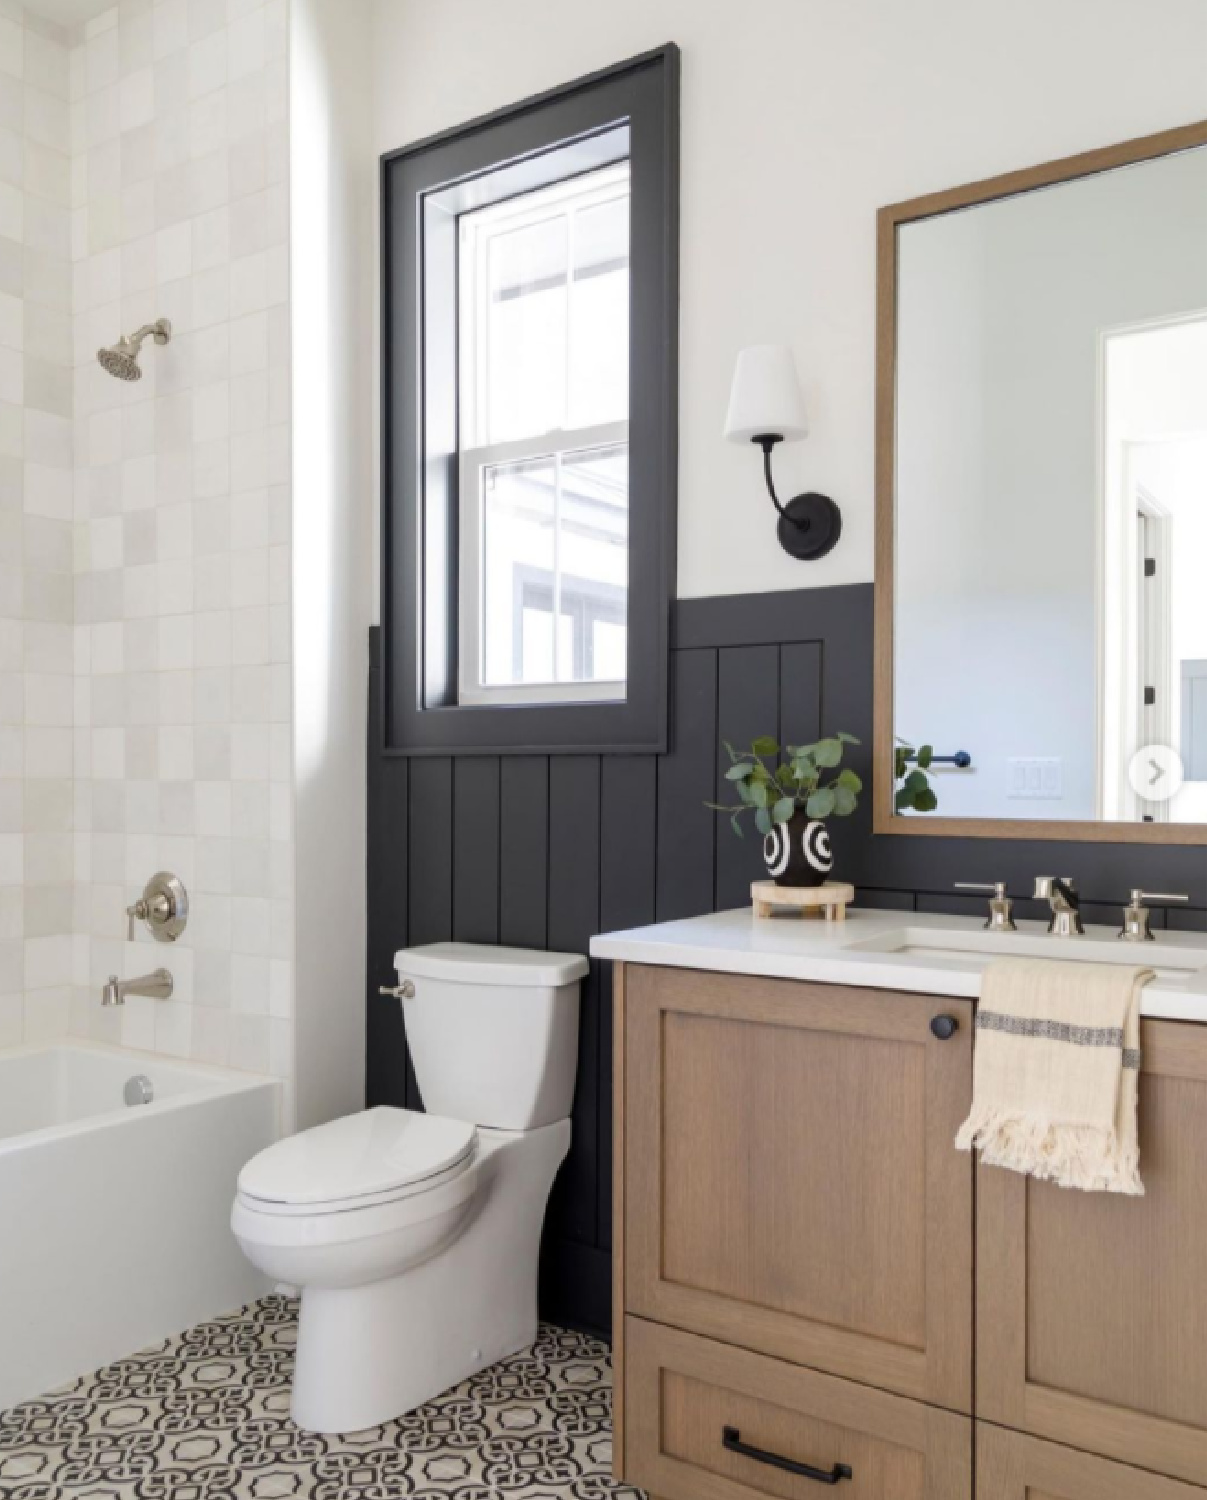 Black and white bathroom design with natural wood vanity and zellige tiles - design by Judith Balis. #blackandwhite #bathroomdesign #bathroomdecor